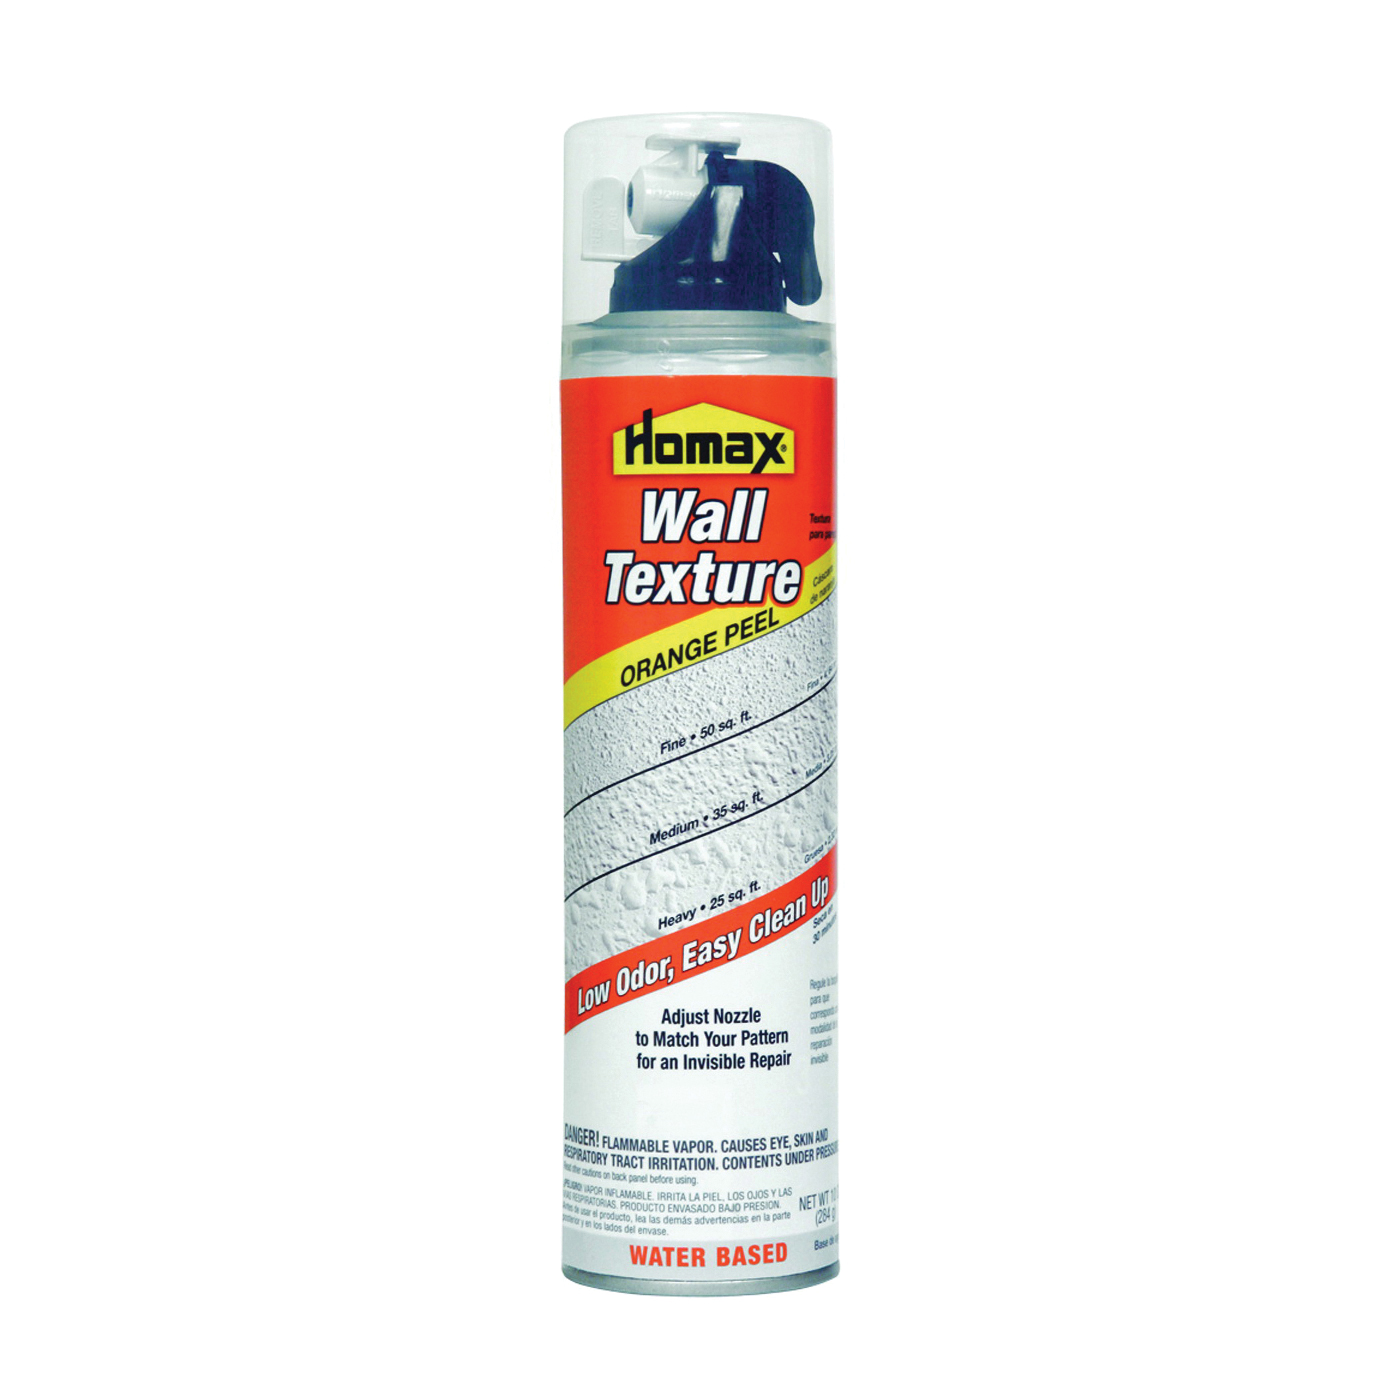 Picture of Homax 4091-06 Wall Texture, Liquid, Ether, Gray/White, 10 oz Package, Aerosol Can